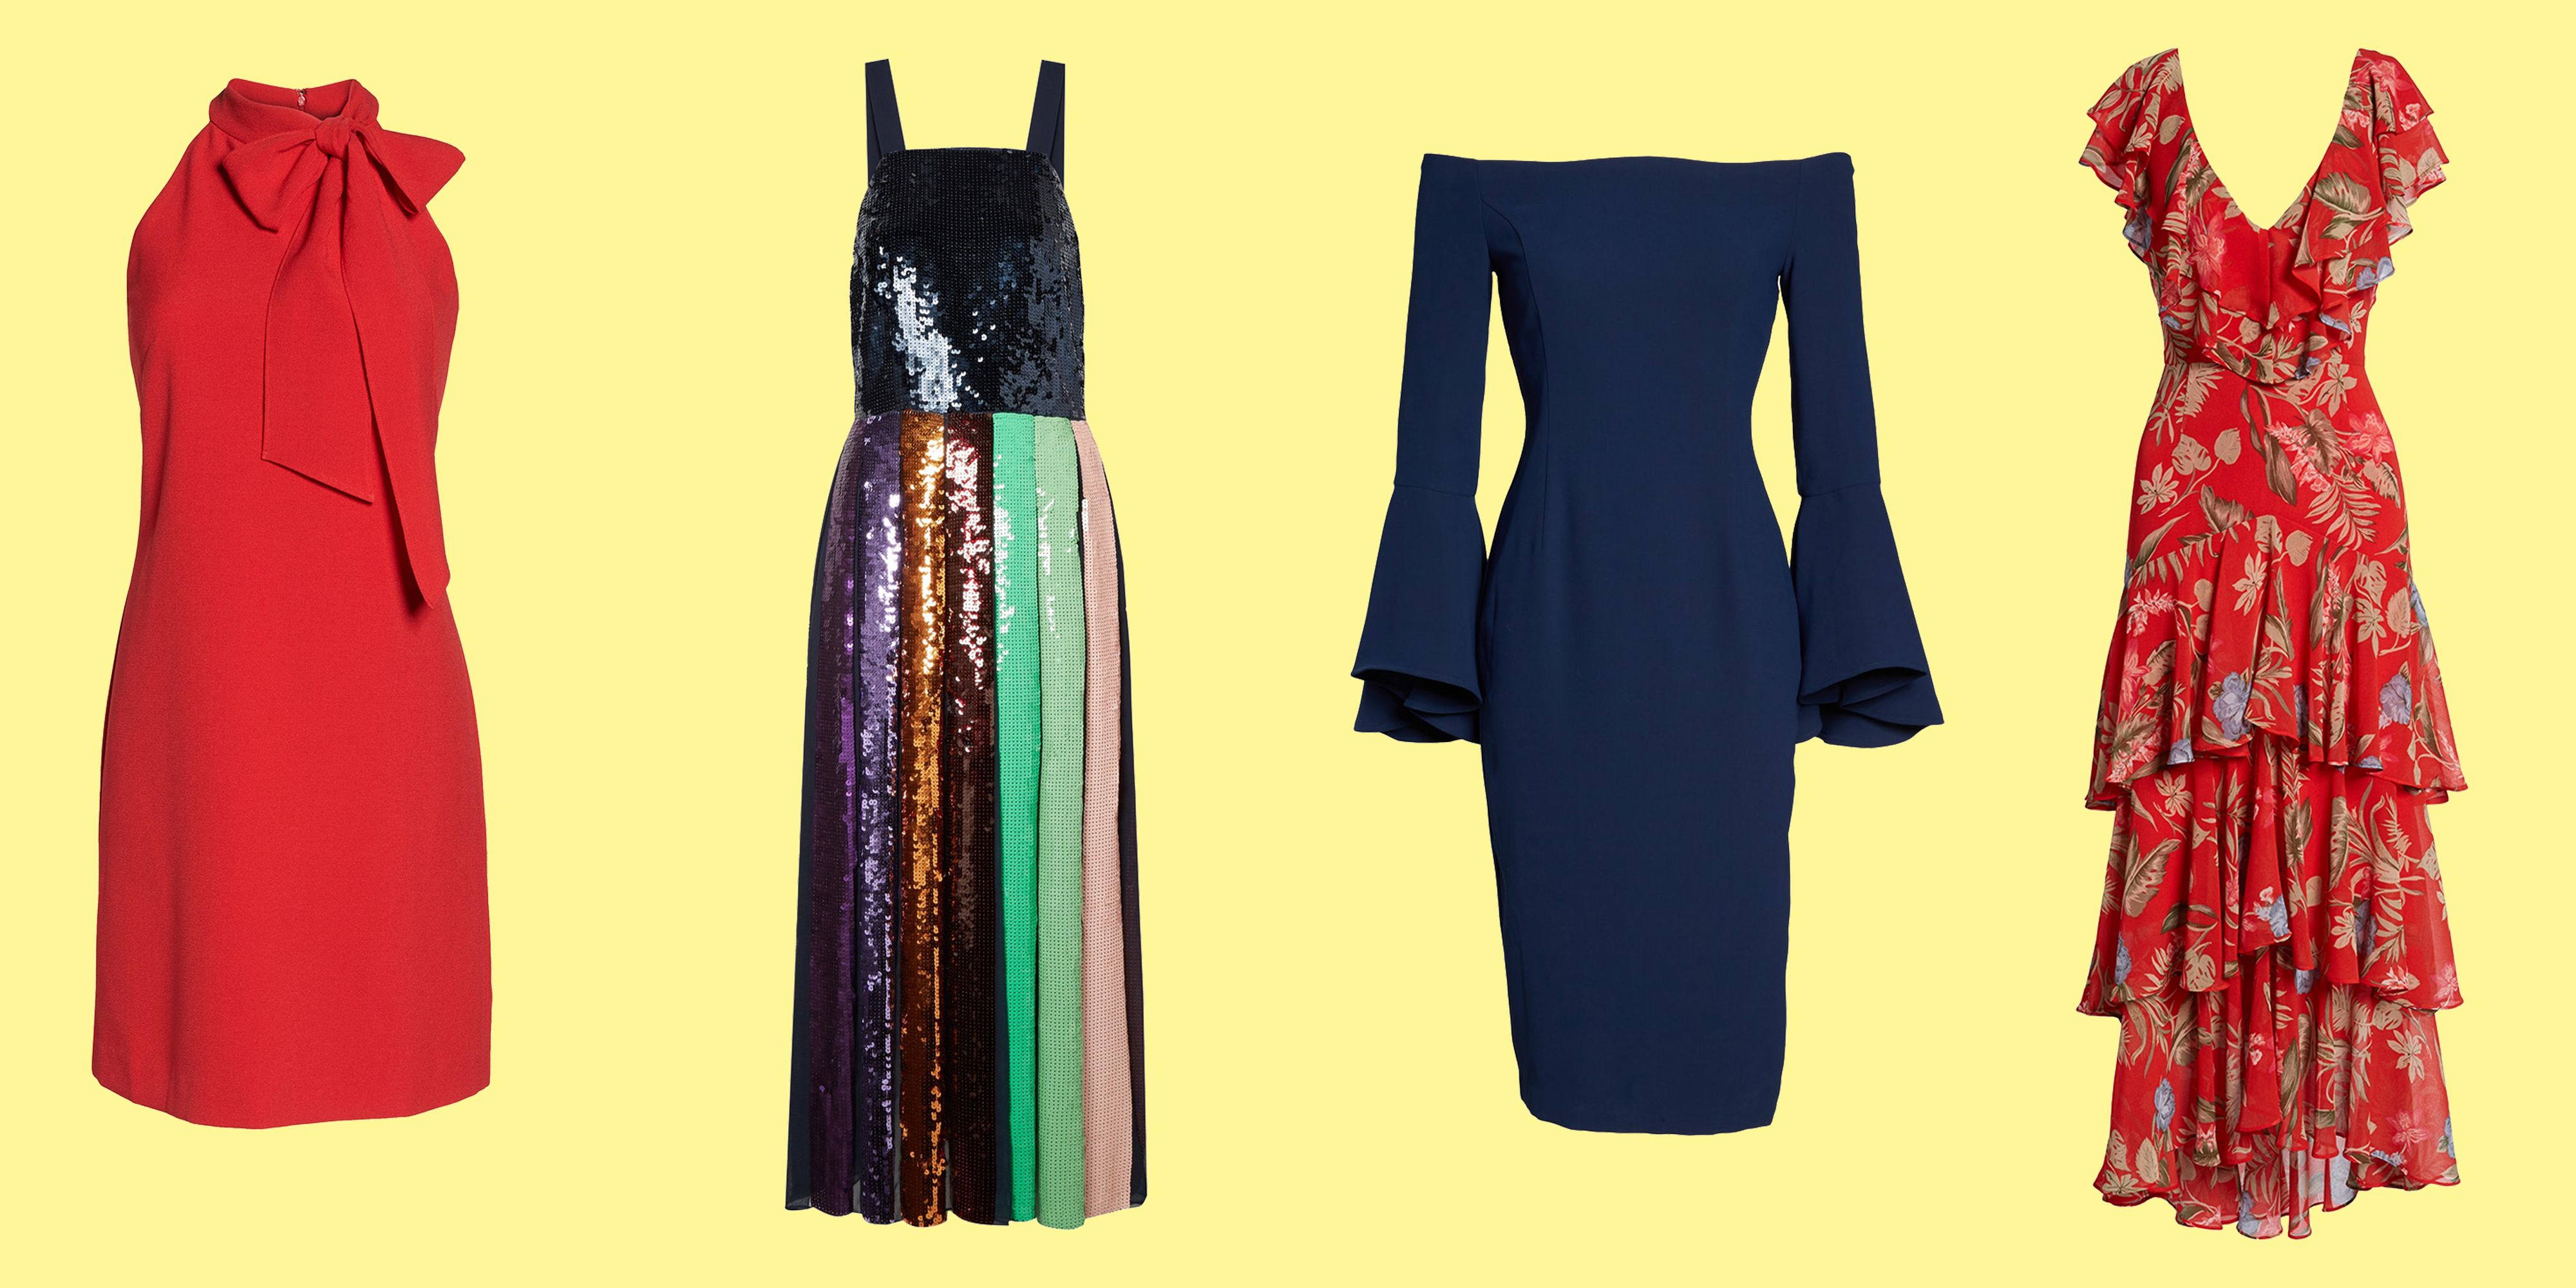 11 Cocktail Dresses That Are Ideal for a Semi-Formal Summer Wedding